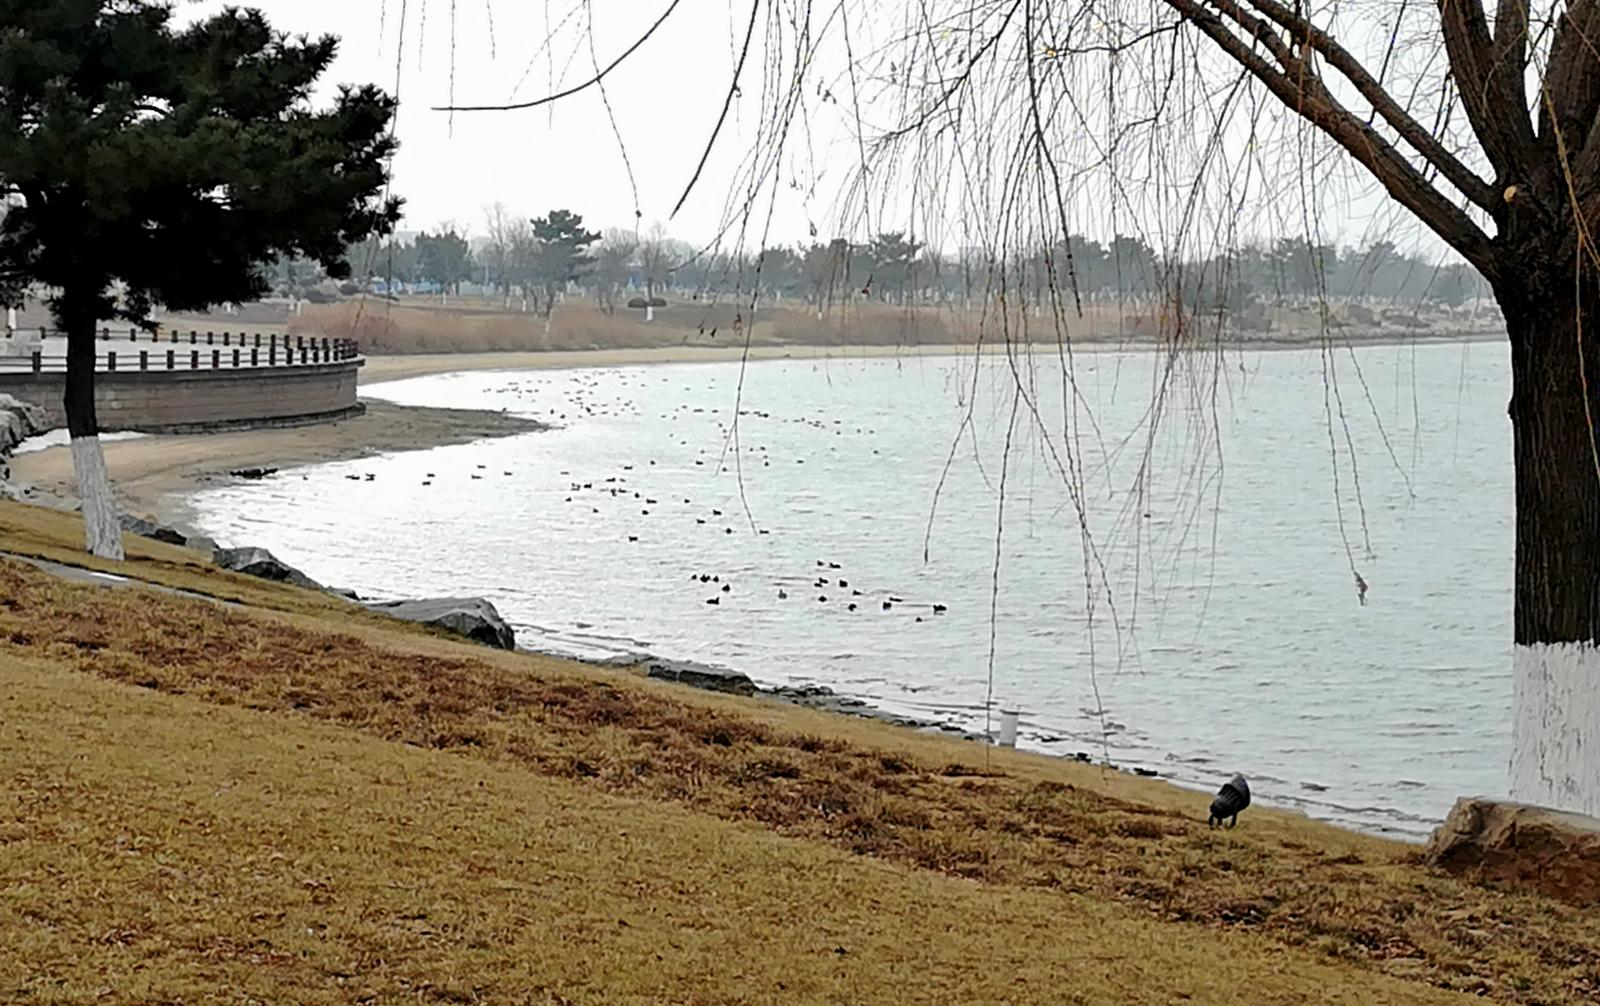 Foto de Cherry Lake Bicycle Loop, Rongcheng, Shandong Province, PRC